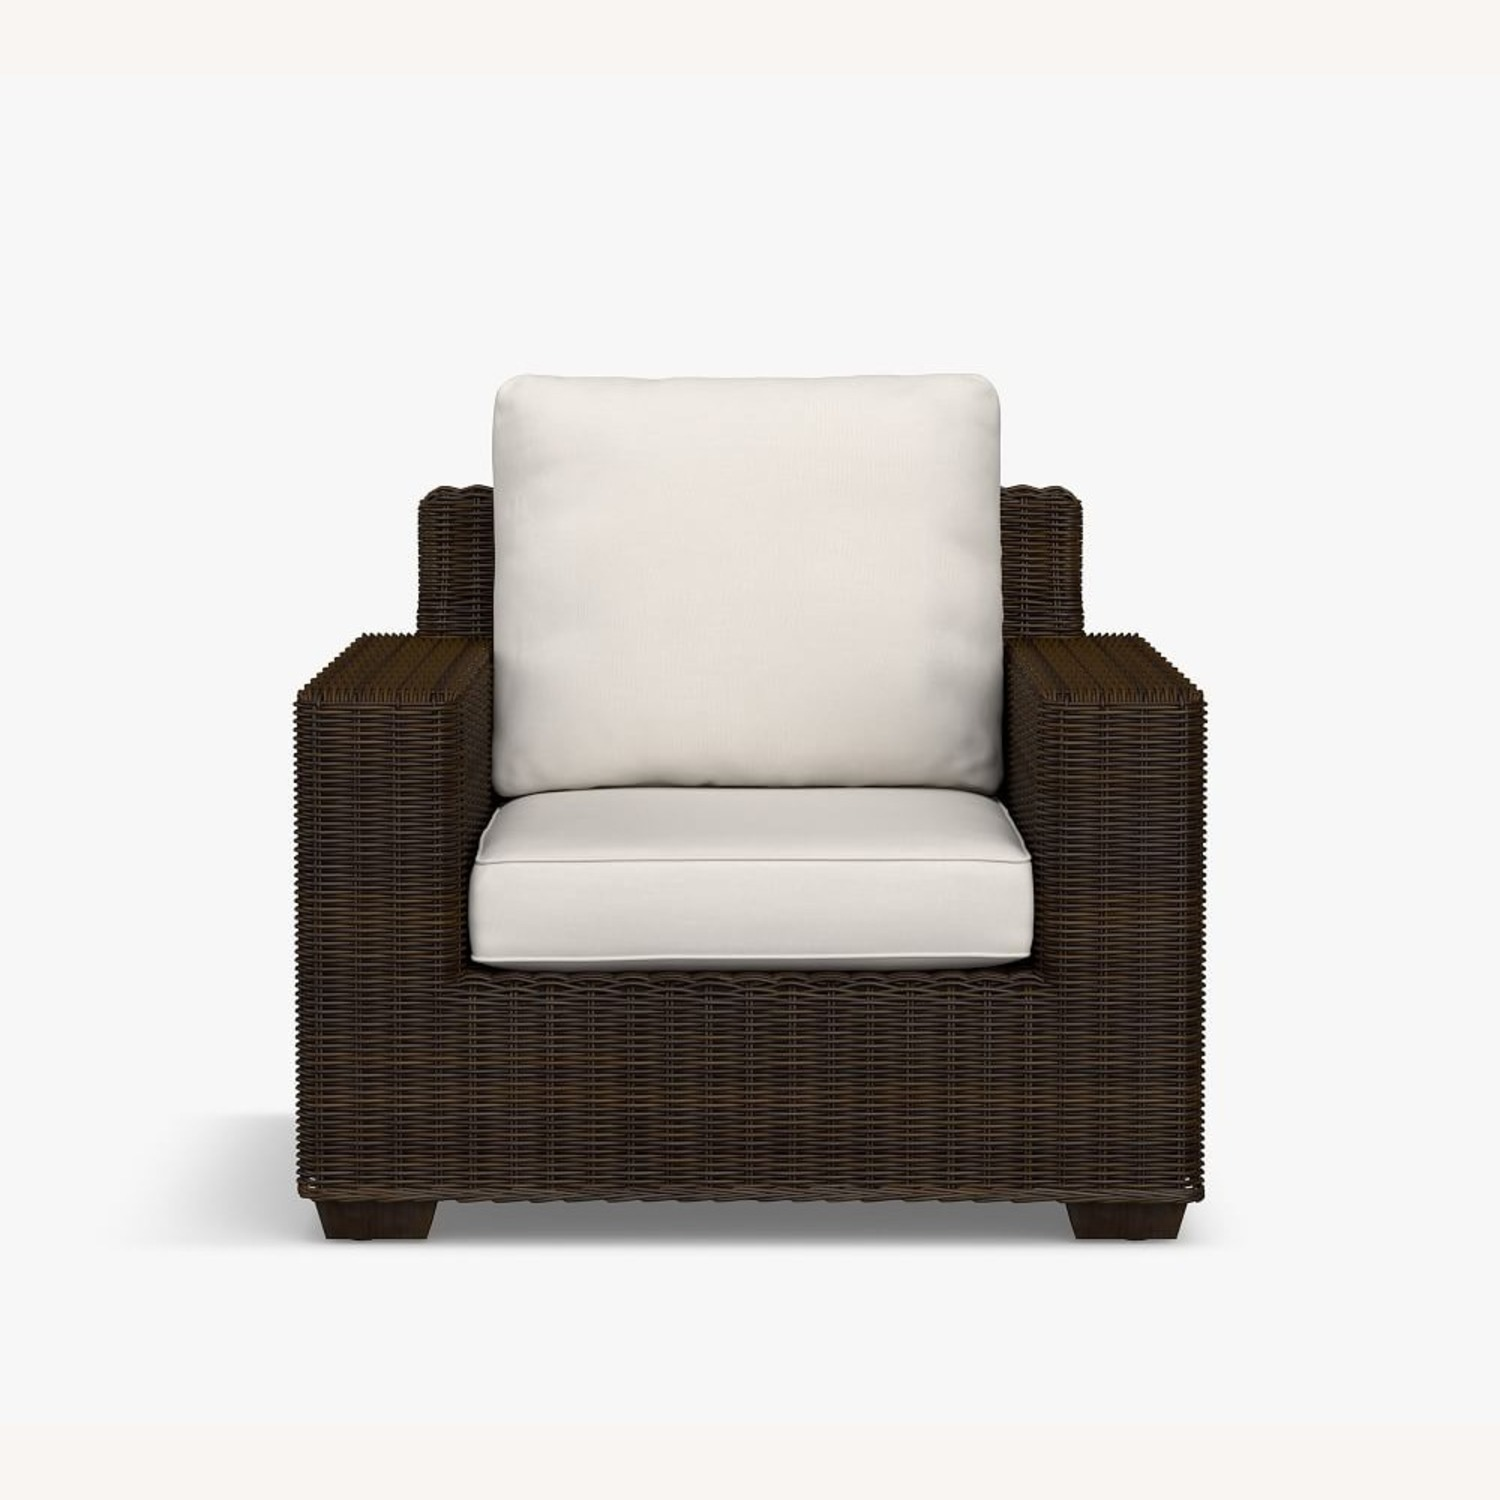 Pottery Barn Torrey All-Weather Lounge Chair - image-3